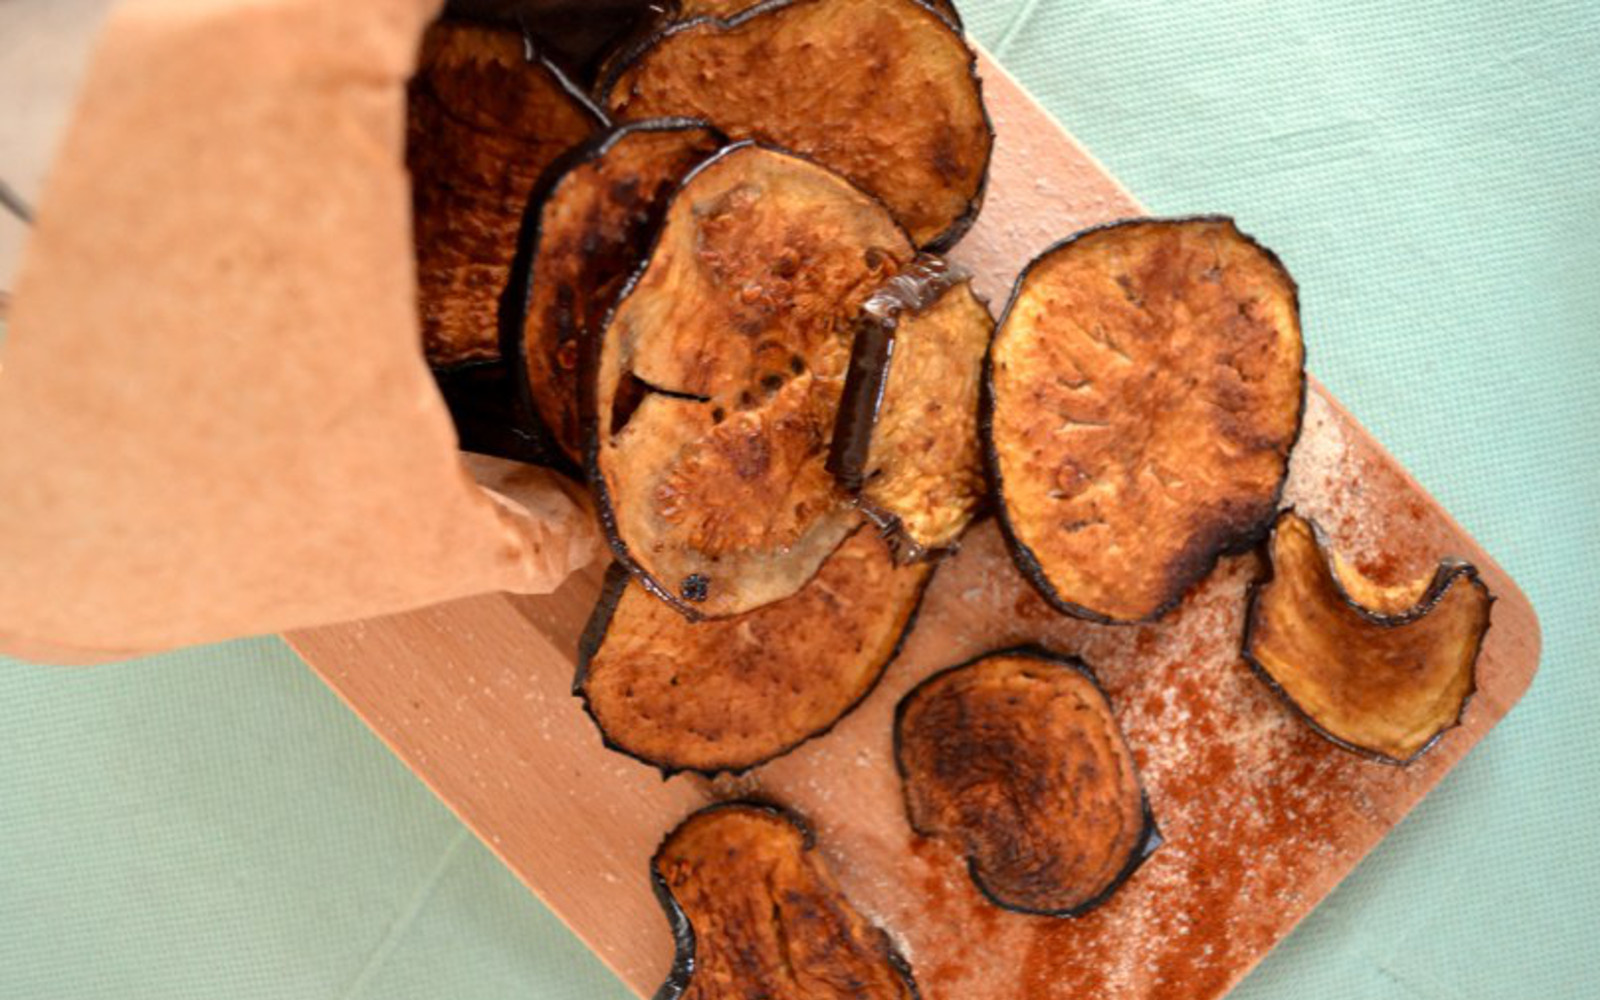 Vegan Gluten-Free Spicy Balsamic Baked Eggplant Chips